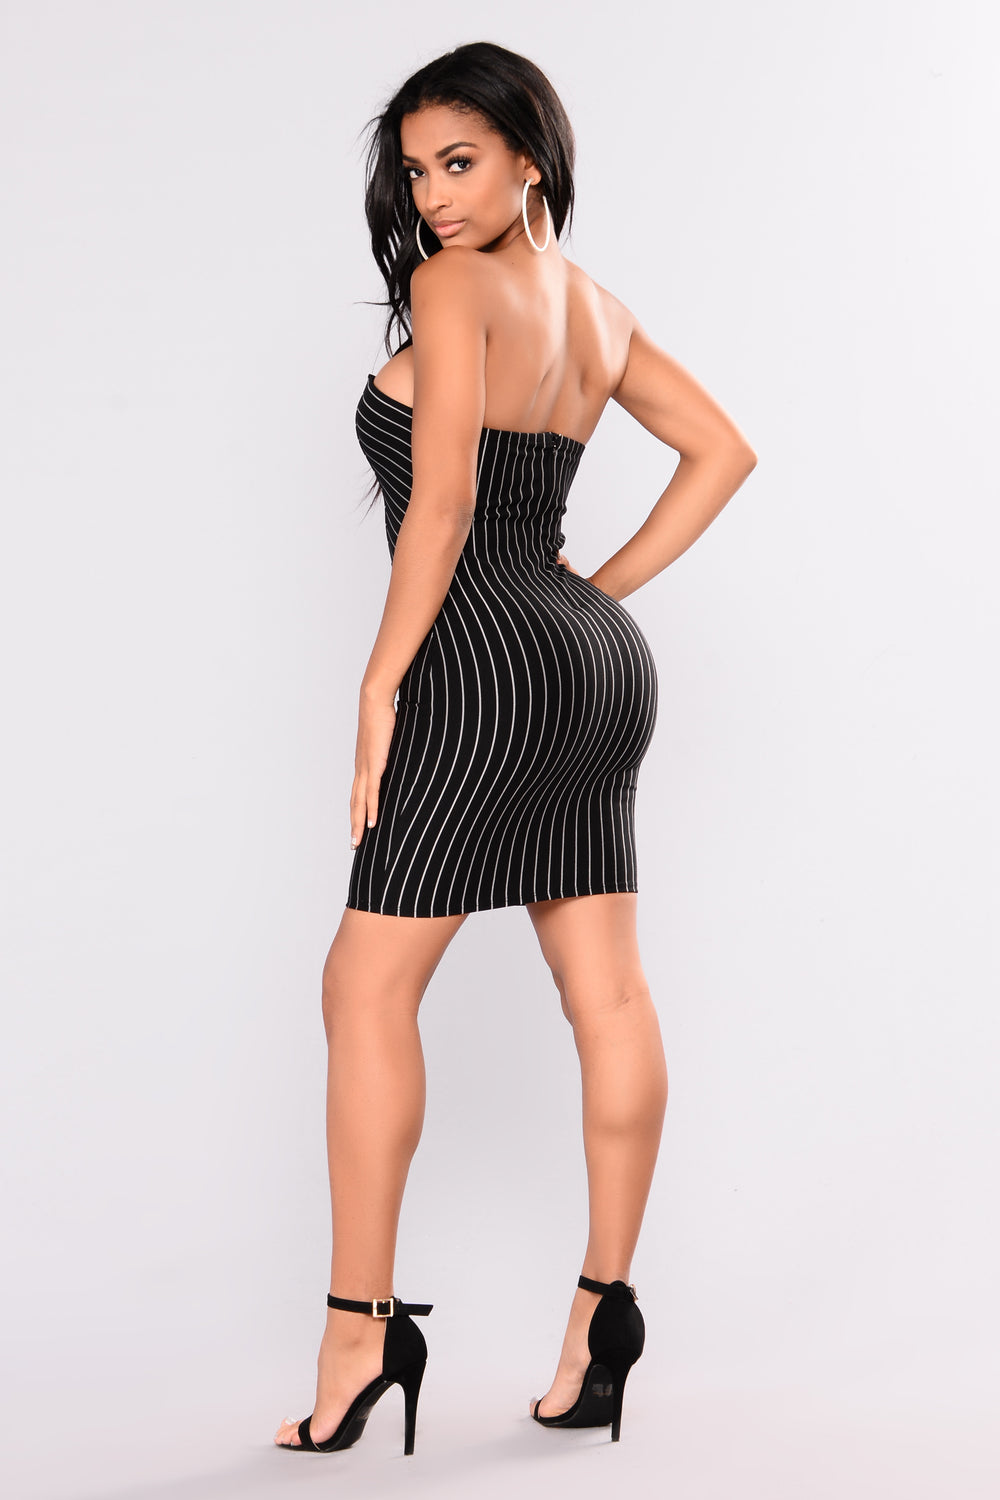 Denise Striped Dress - Black/White